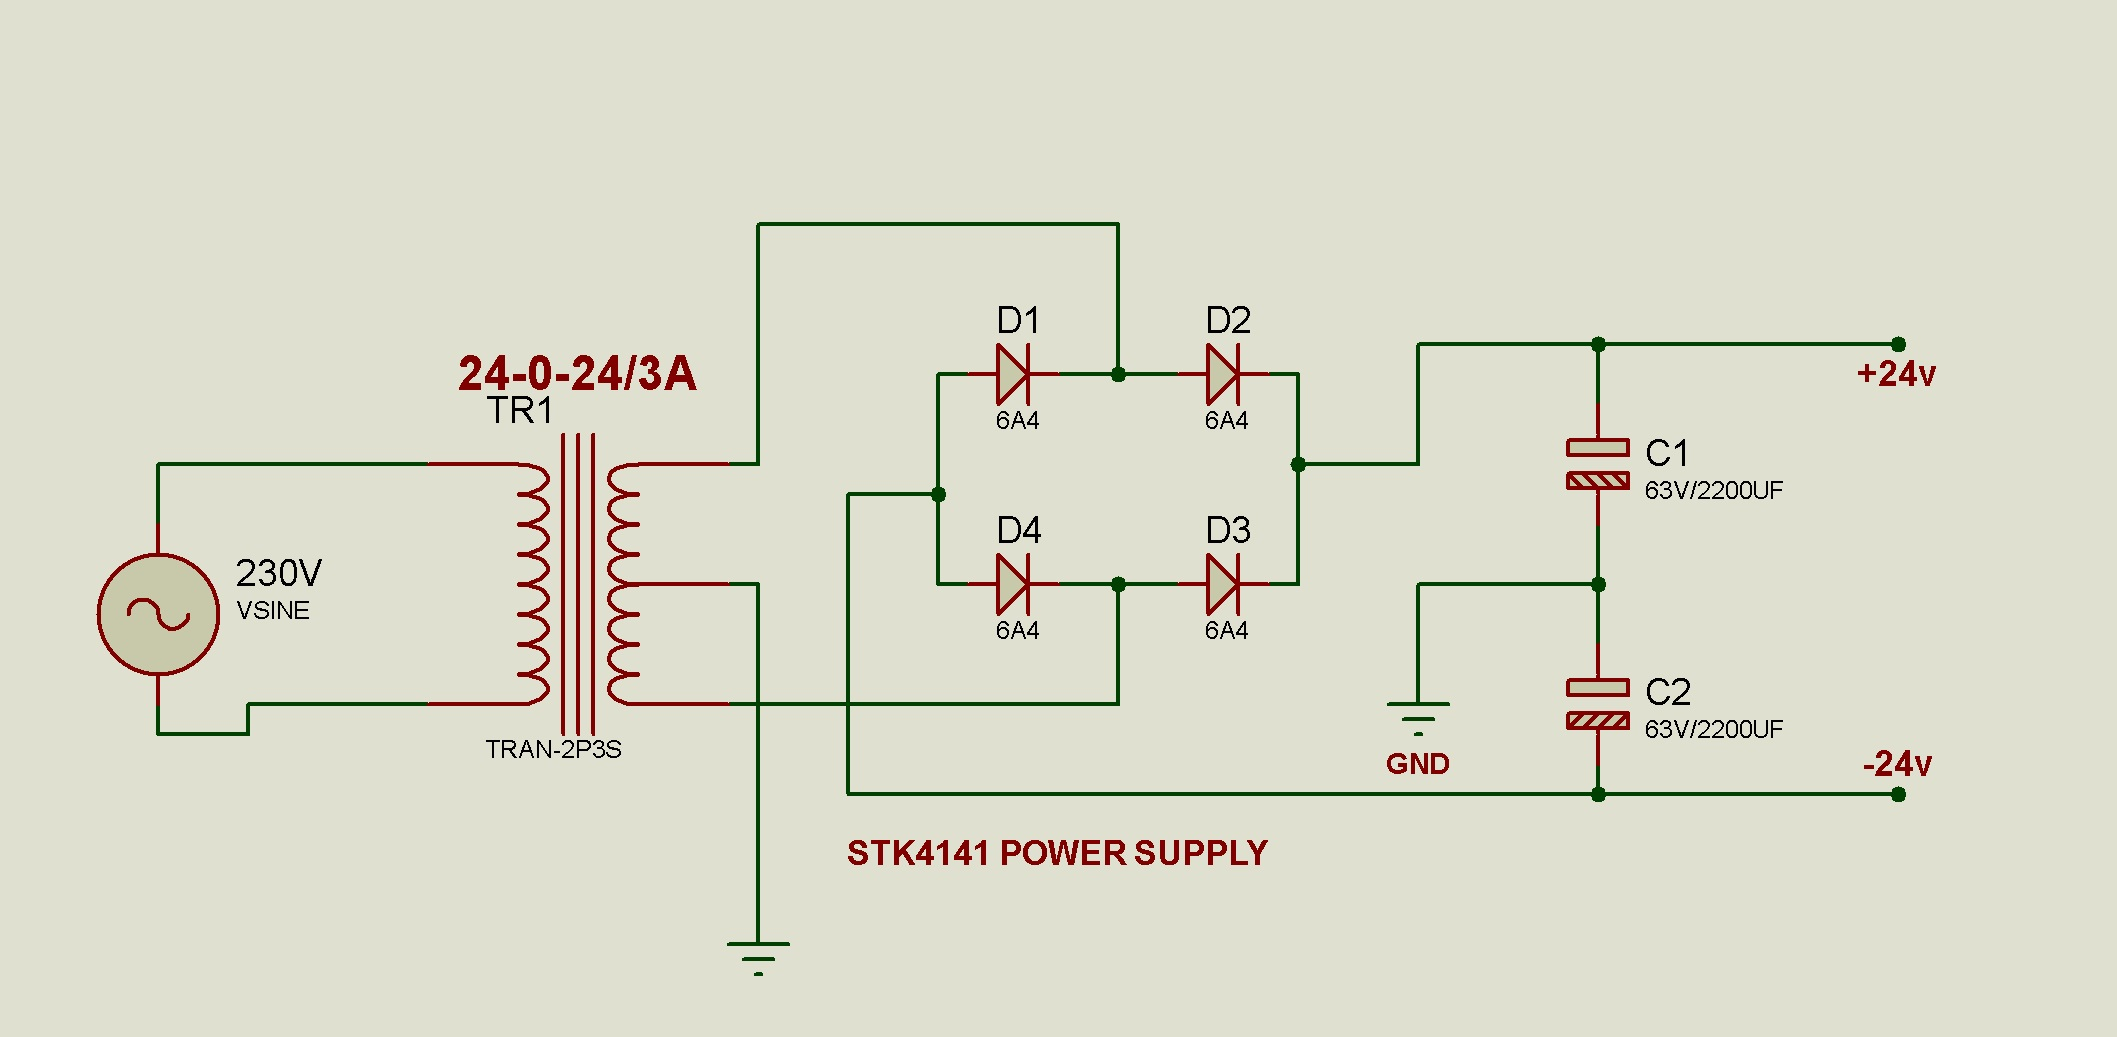 Gunacircuits 25w Audio Amplifier Circuit Very Simple This Stereo Will Deliver Power On Each Output Channel 2x25w With Stk4141ii Diagram